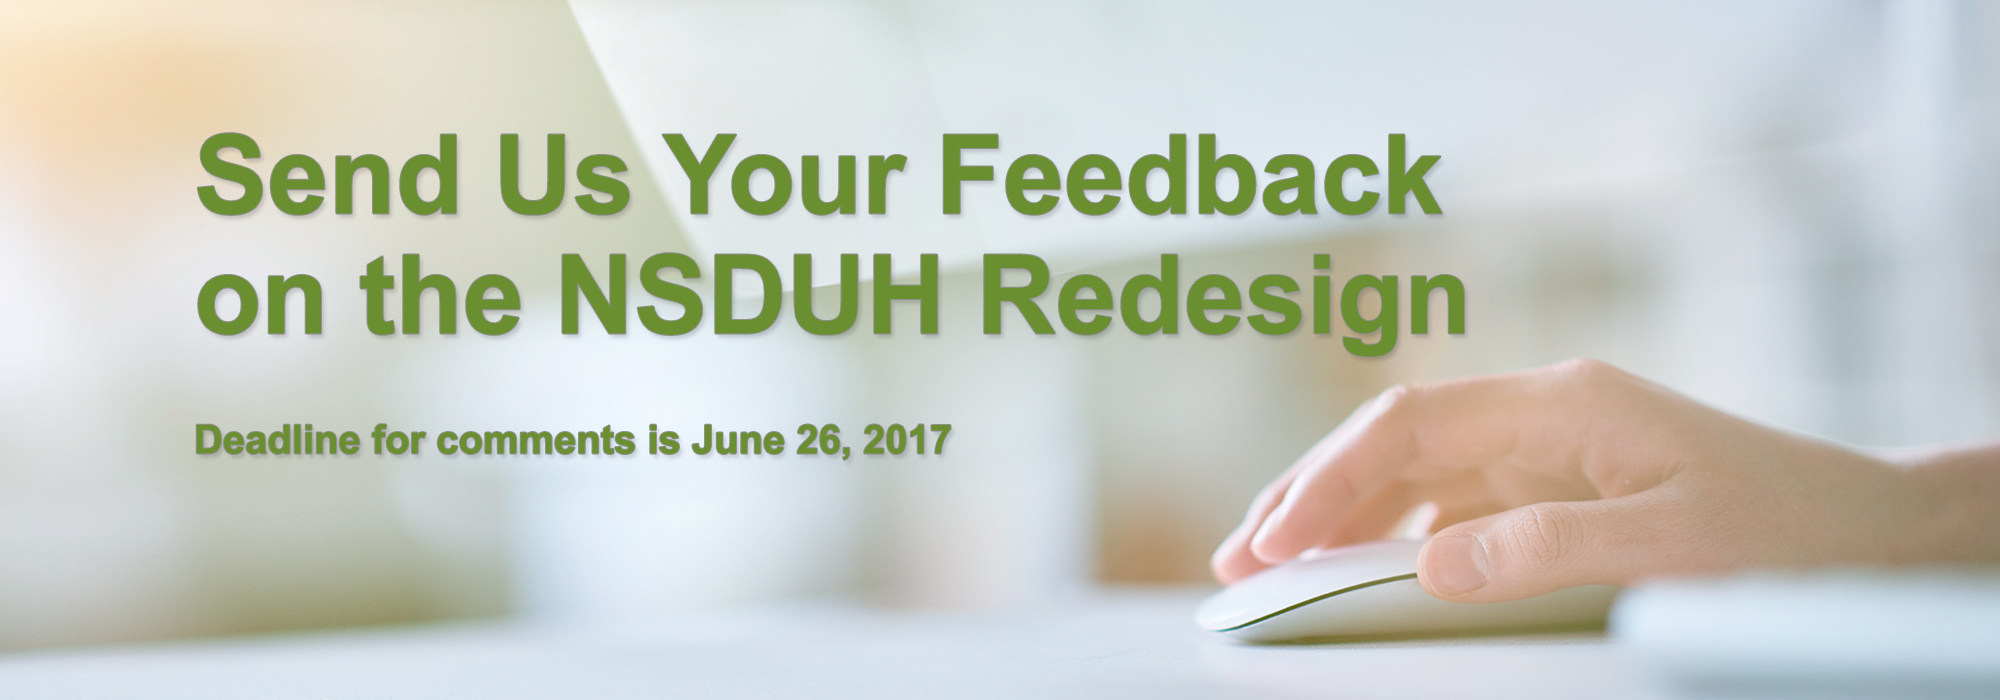 Comment on the NSDUH Redesign